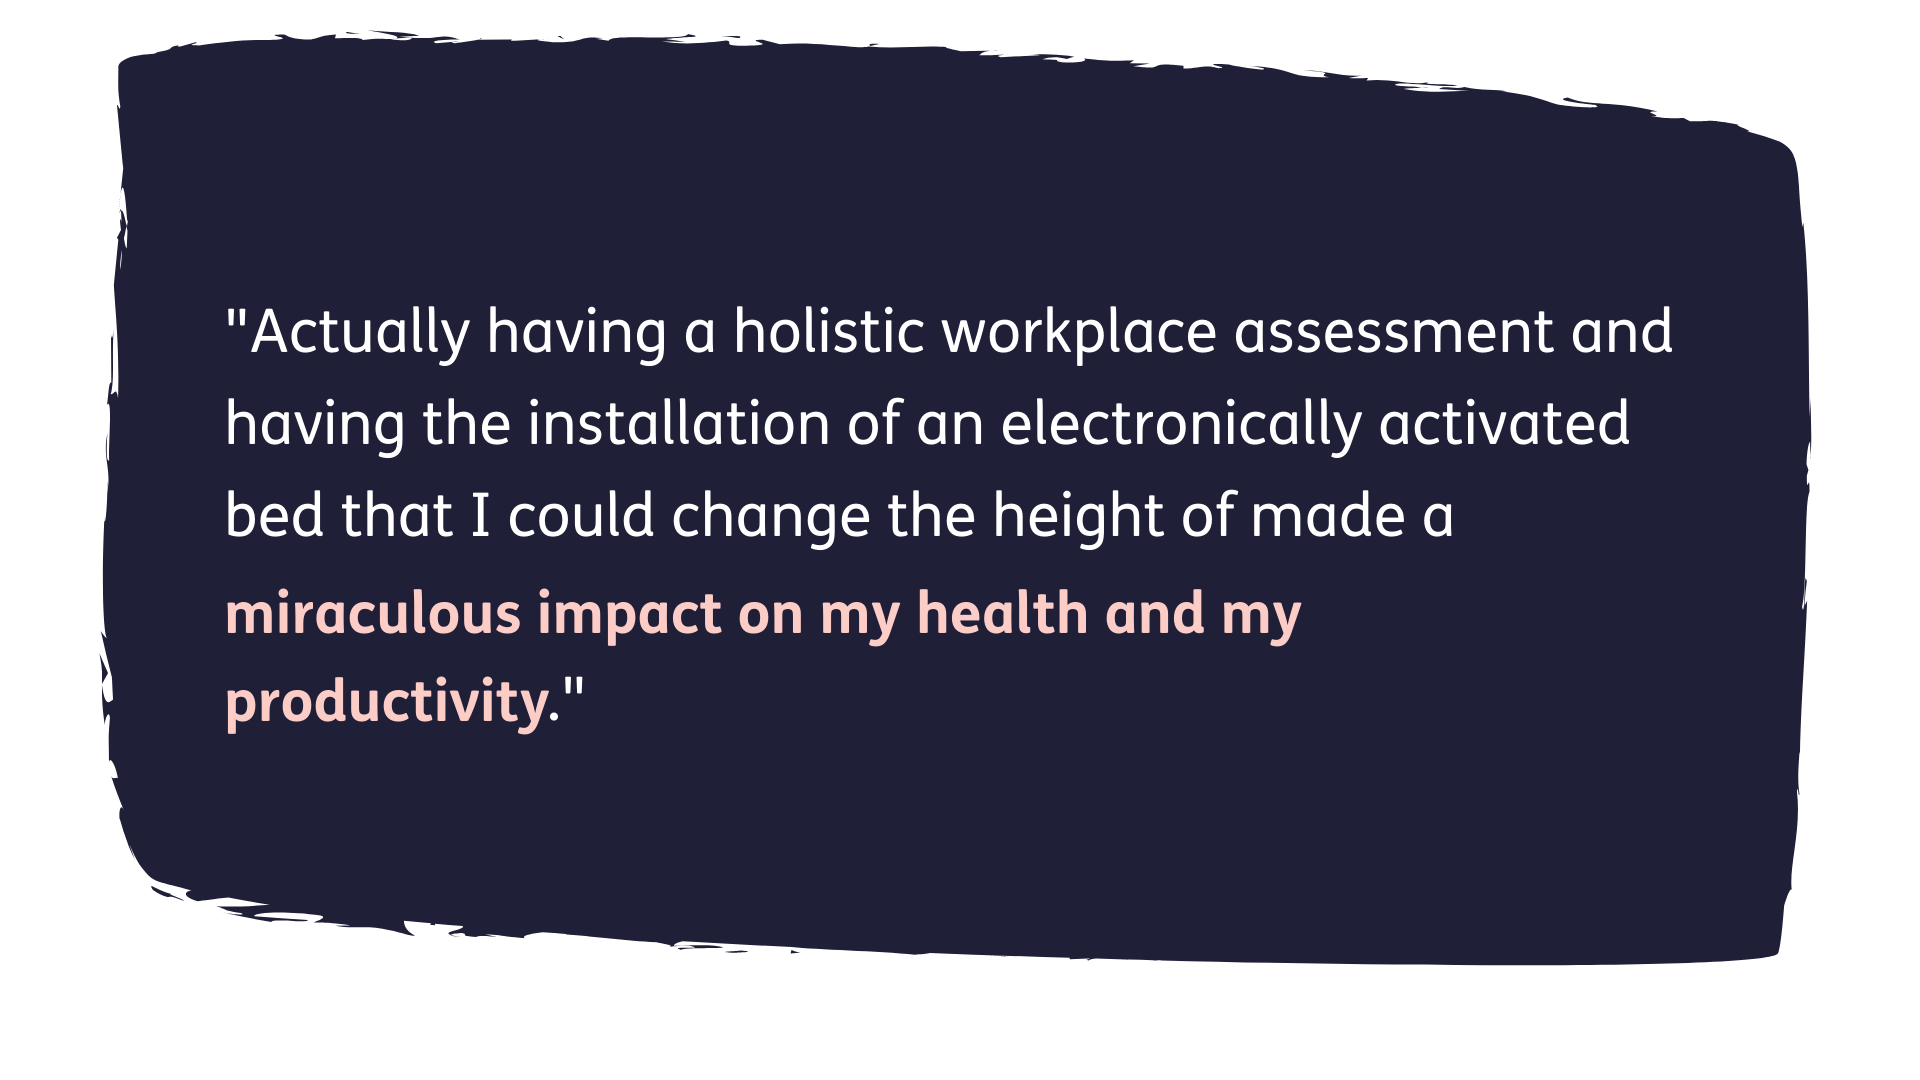 """Quote reads: """"Actually having a holistic workplace assessment and having the installation of an electronically activated bed that I could change the height of made a miraculous impact on my health and my productivity."""""""